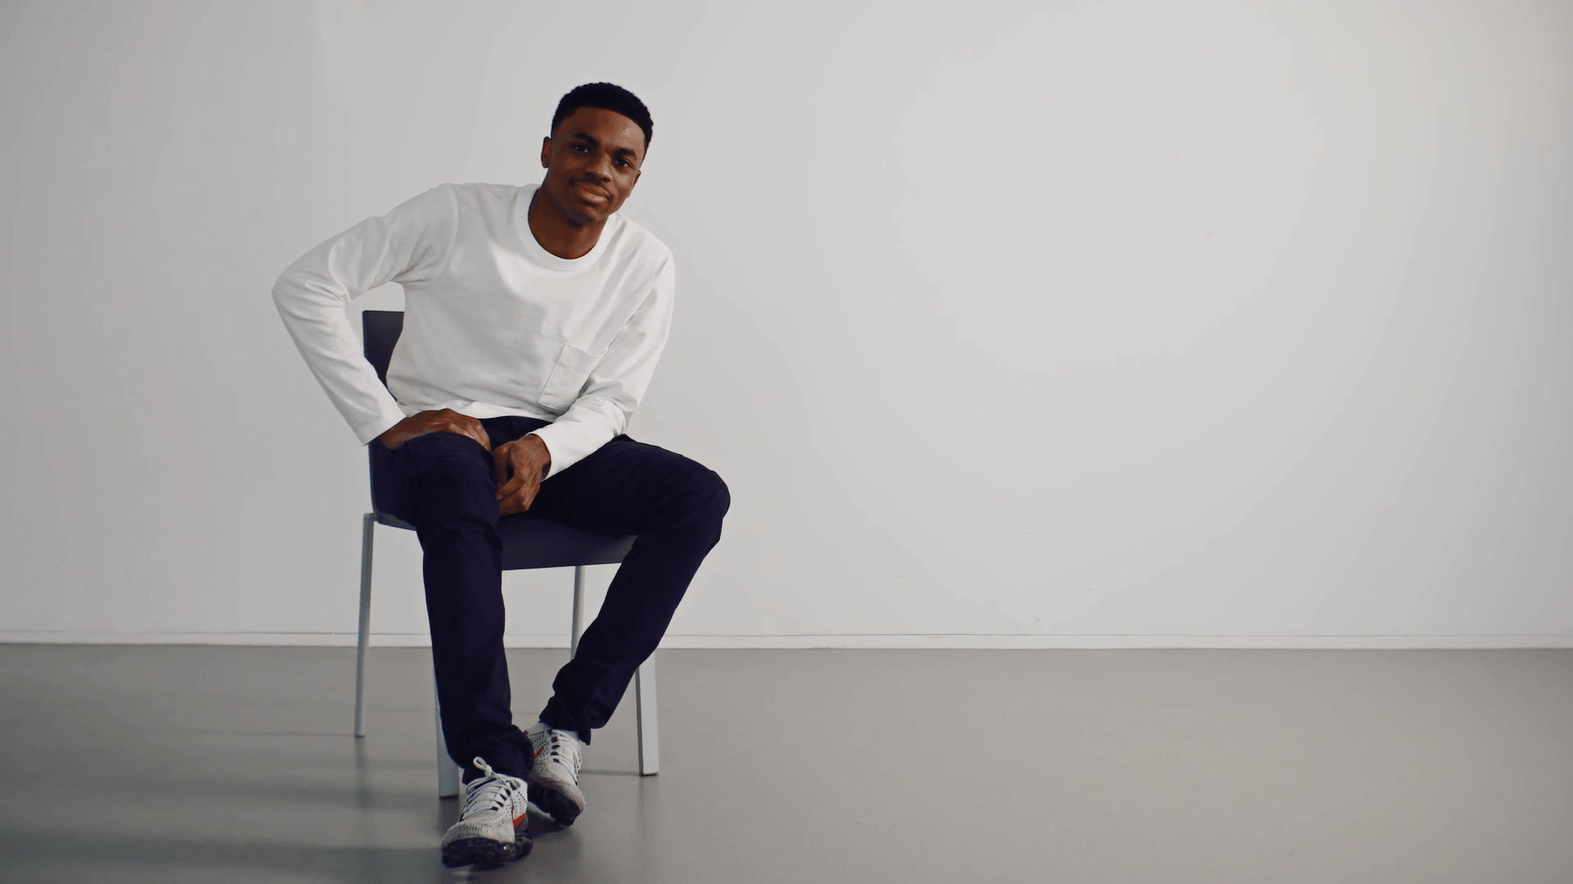 Vince Staples has a message on new single: